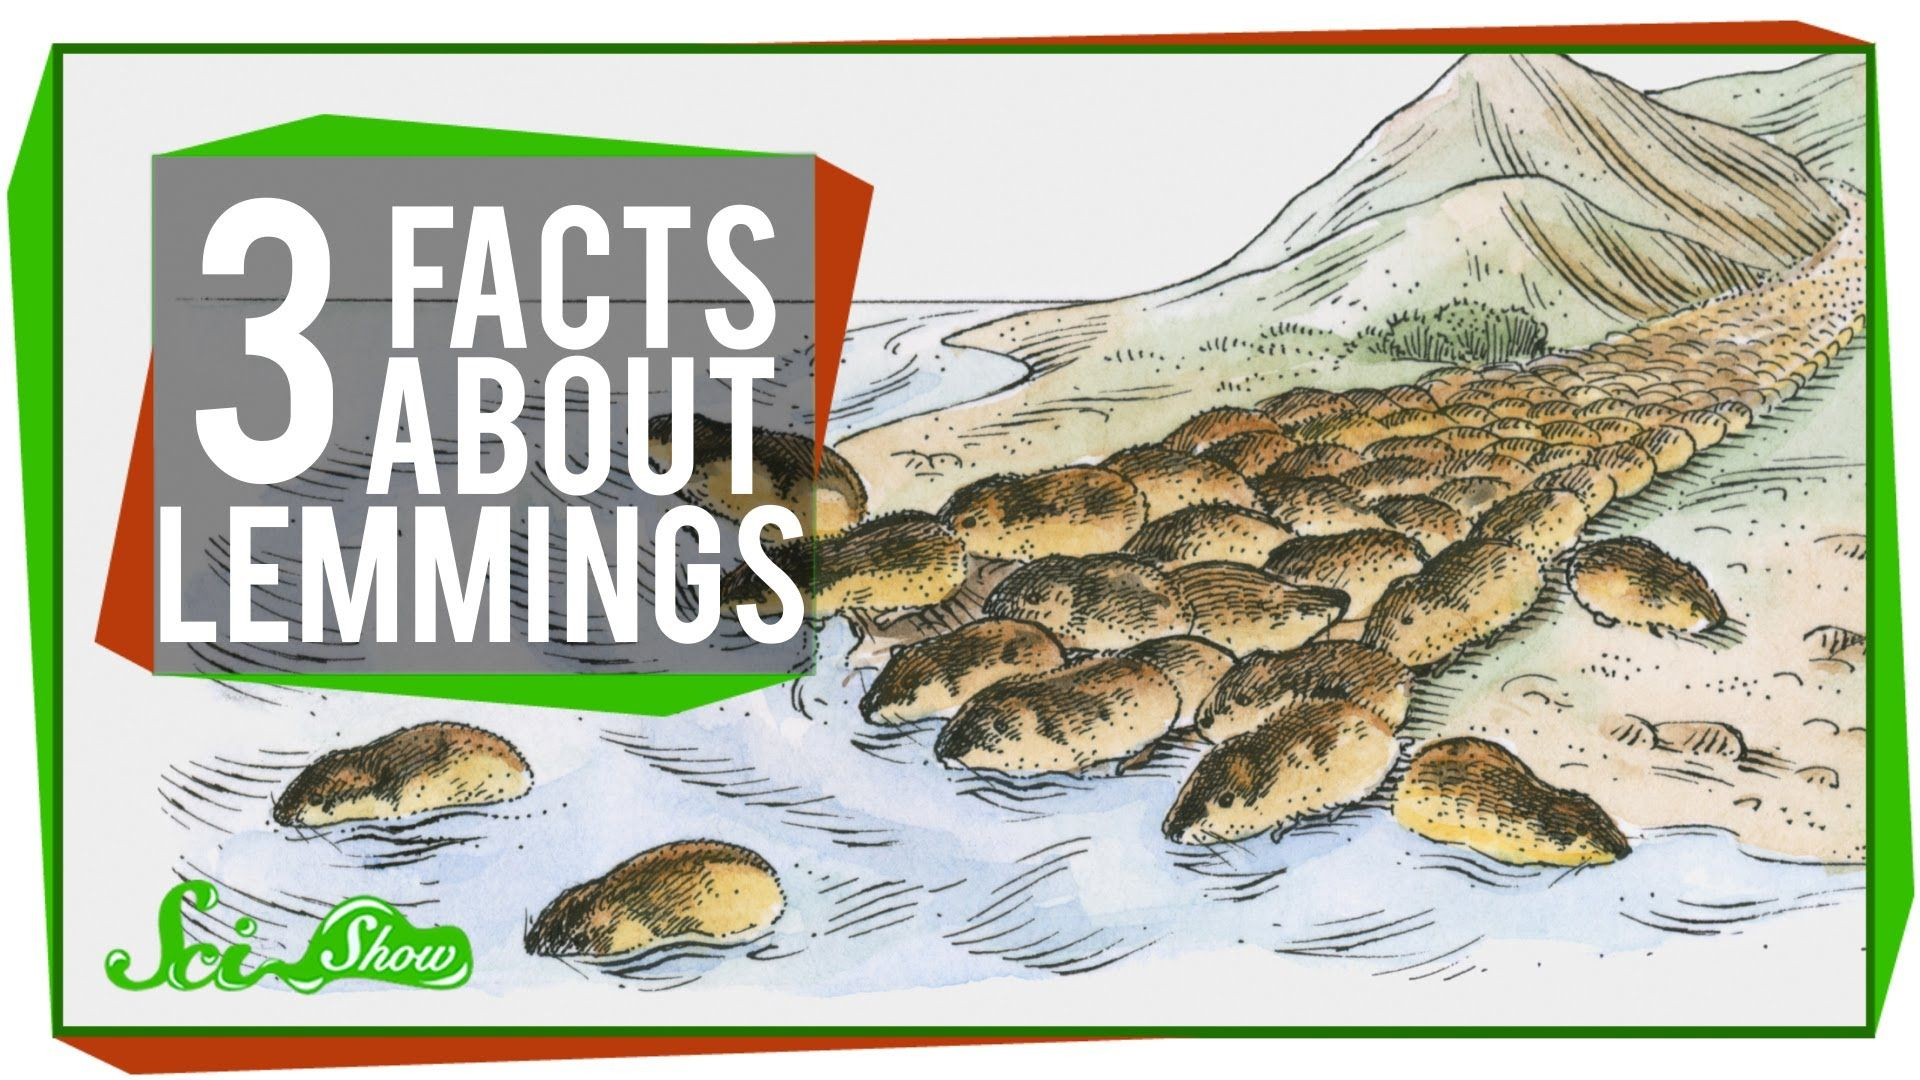 3 Facts About Lemmings Lemming, Facts, Disney documentary